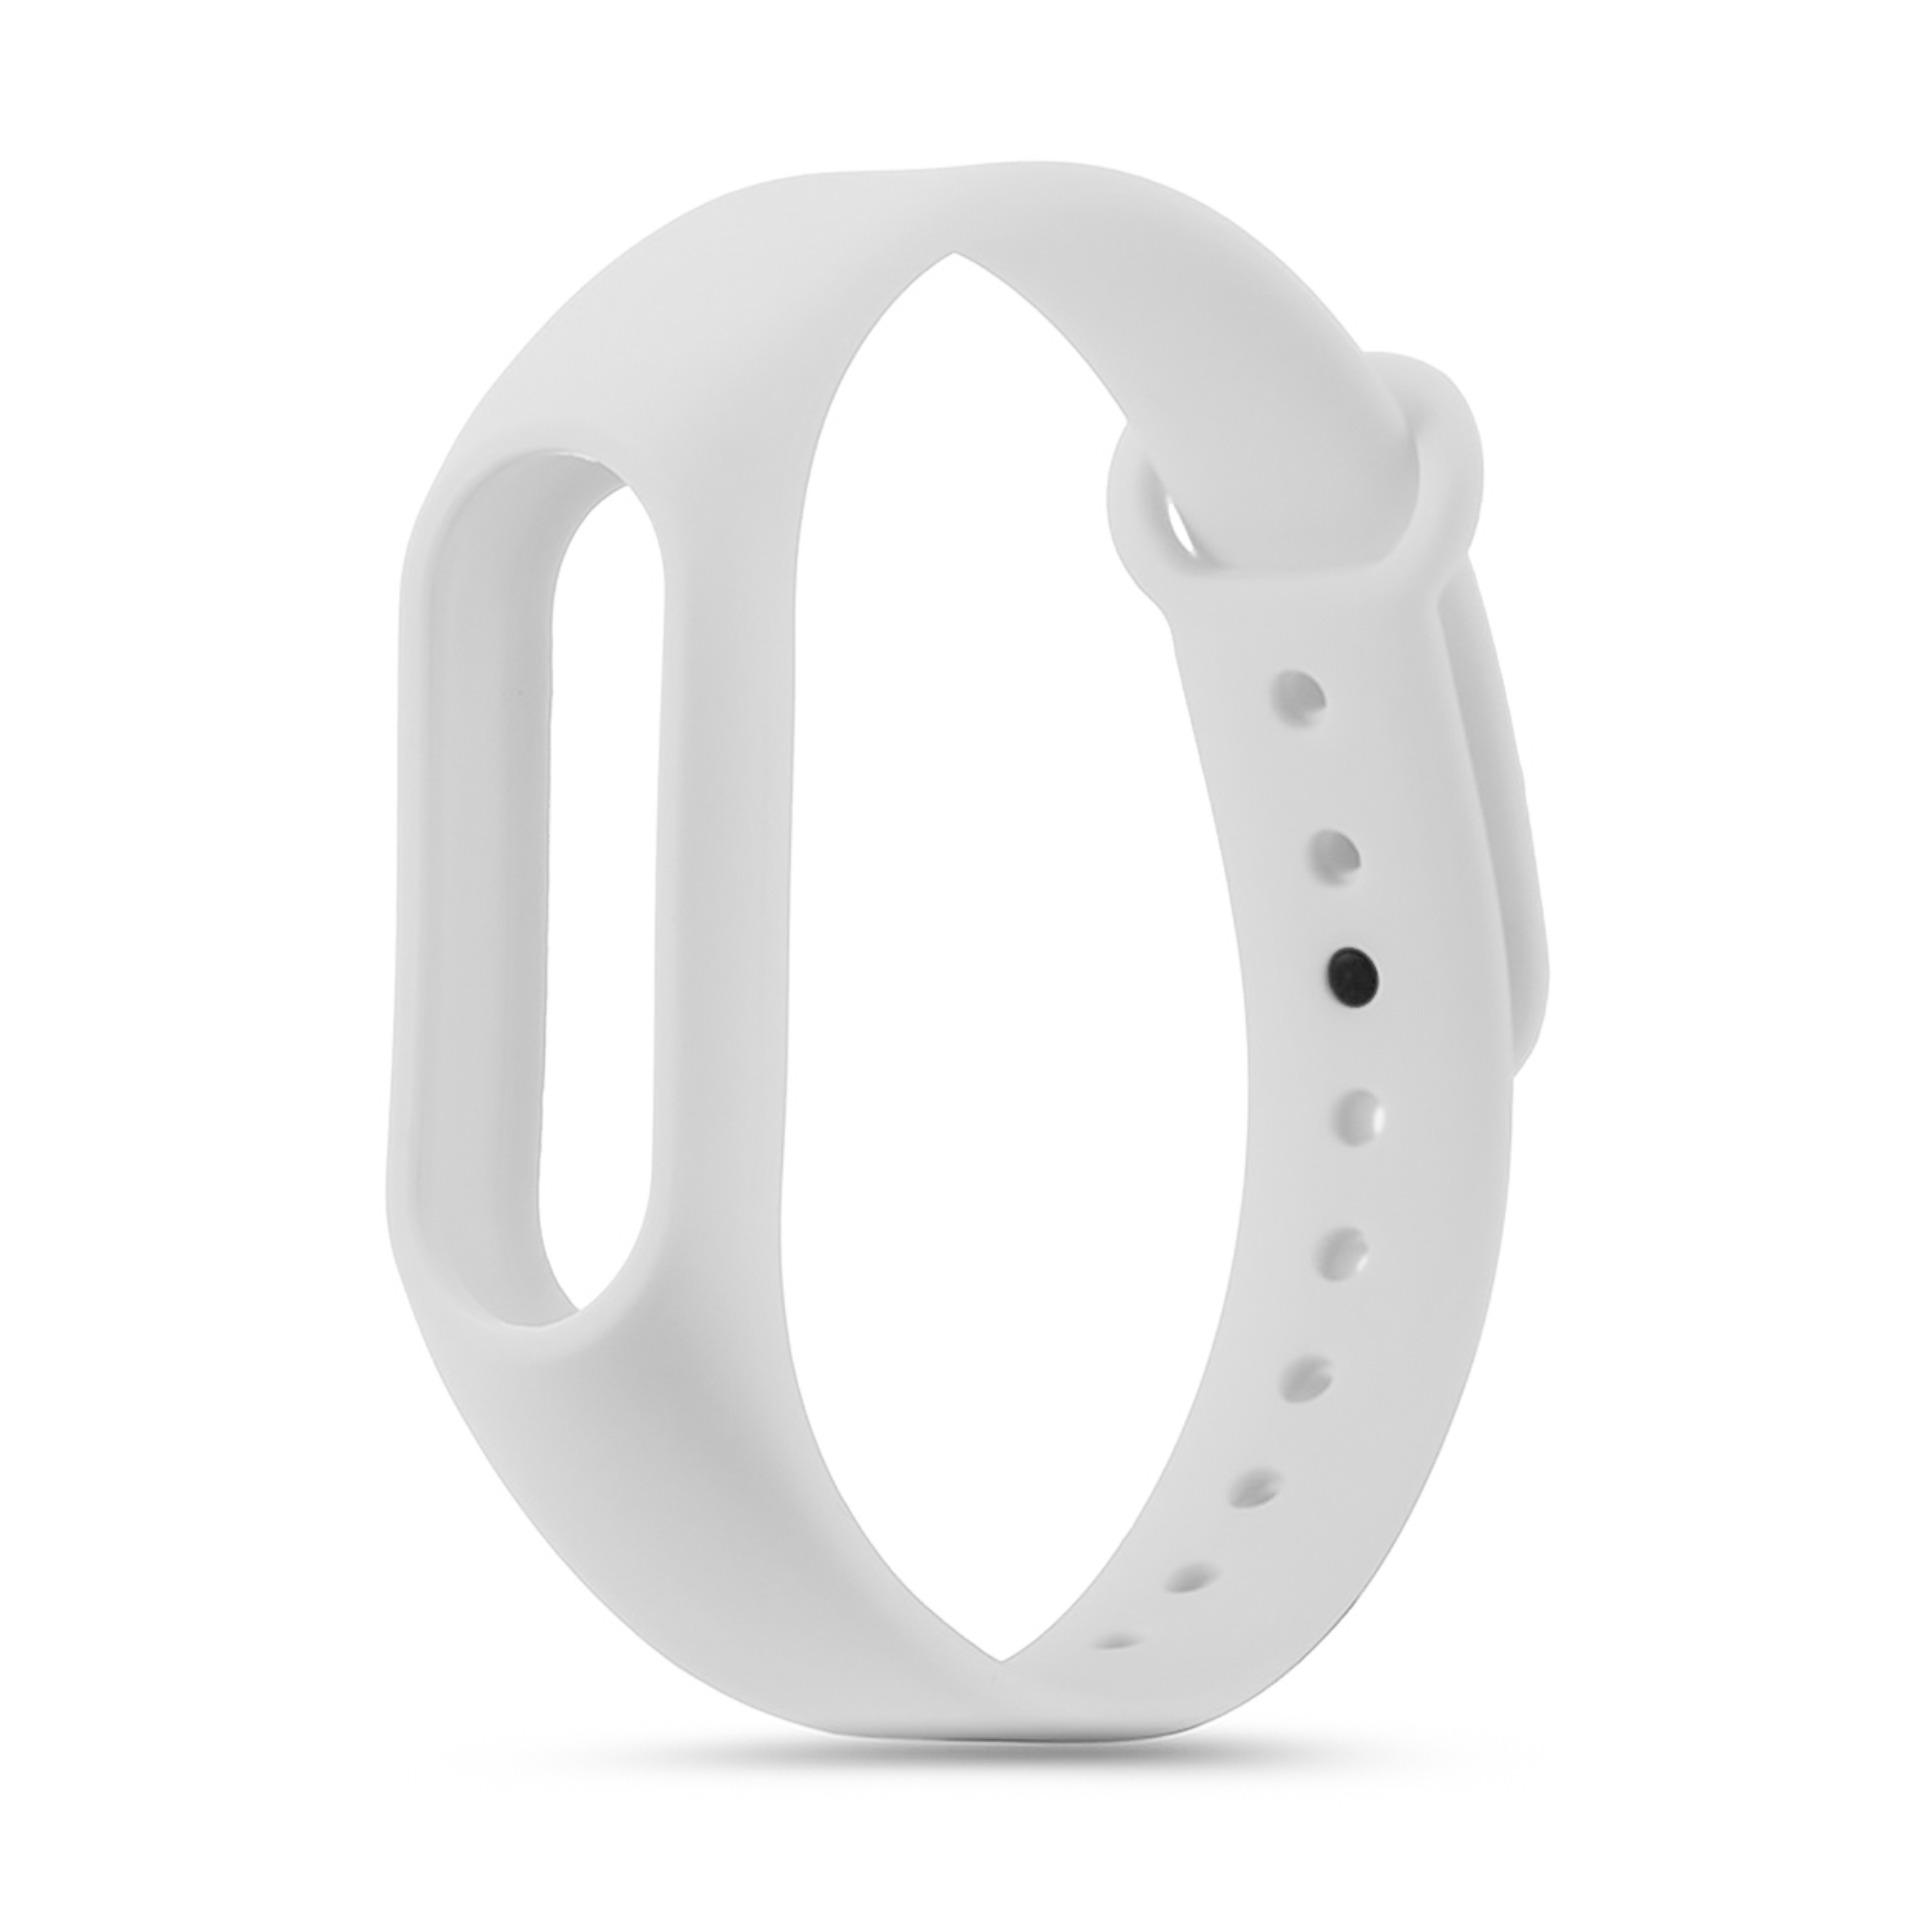 Xiaomi Mi Band 2 Replacement Jelly Watch Band Wrist Strap (white) By Hellotronics.